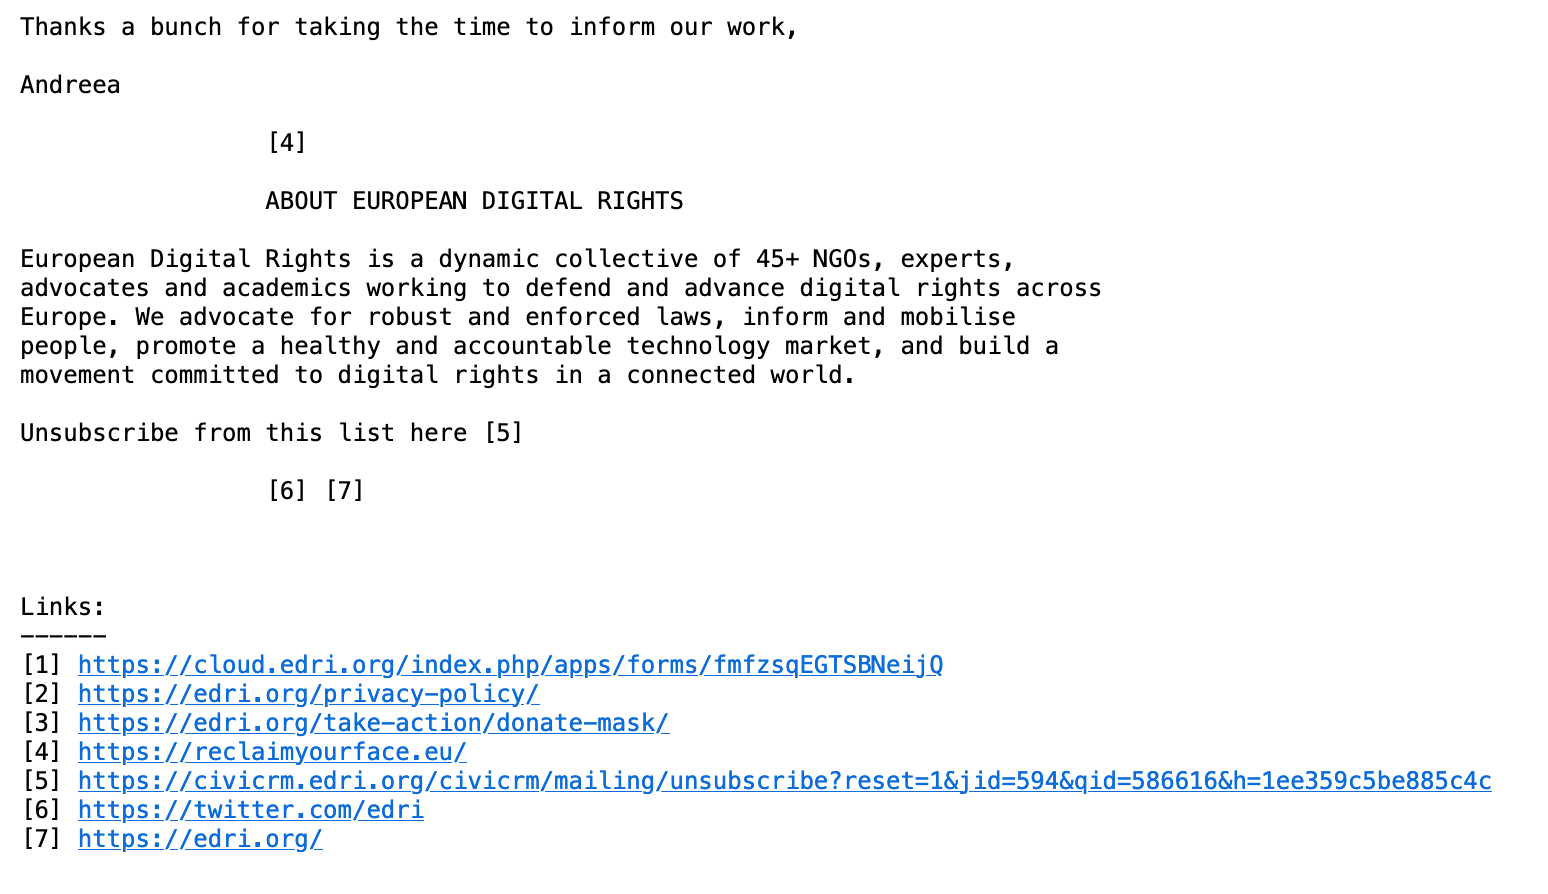 e-mail screenshot:  Thanks a bunch for taking the time to inform our work,  Andreea    [4]     ABOUT EUROPEAN DIGITAL RIGHTS   European Digital Rights is a dynamic collective of 45+ NGOs, experts, advocates and academics working to defend and advance digital rights across Europe. We advocate for robust and enforced laws, inform and mobilise people, promote a healthy and accountable technology market, and build a movement committed to digital rights in a connected world.   Unsubscribe from this list here [5]    [6] [7]      Links: ------ [1] https://cloud.edri.org/index.php/apps/forms/fmfzsqEGTSBNeijQ [2] https://edri.org/privacy-policy/ [3] https://edri.org/take-action/donate-mask/ [4] https://reclaimyourface.eu/ [5] https://civicrm.edri.org/civicrm/mailing/unsubscribe?reset=1&jid=594&qid=586616&h=1ee359c5be885c4c [6] https://twitter.com/edri [7] https://edri.org/